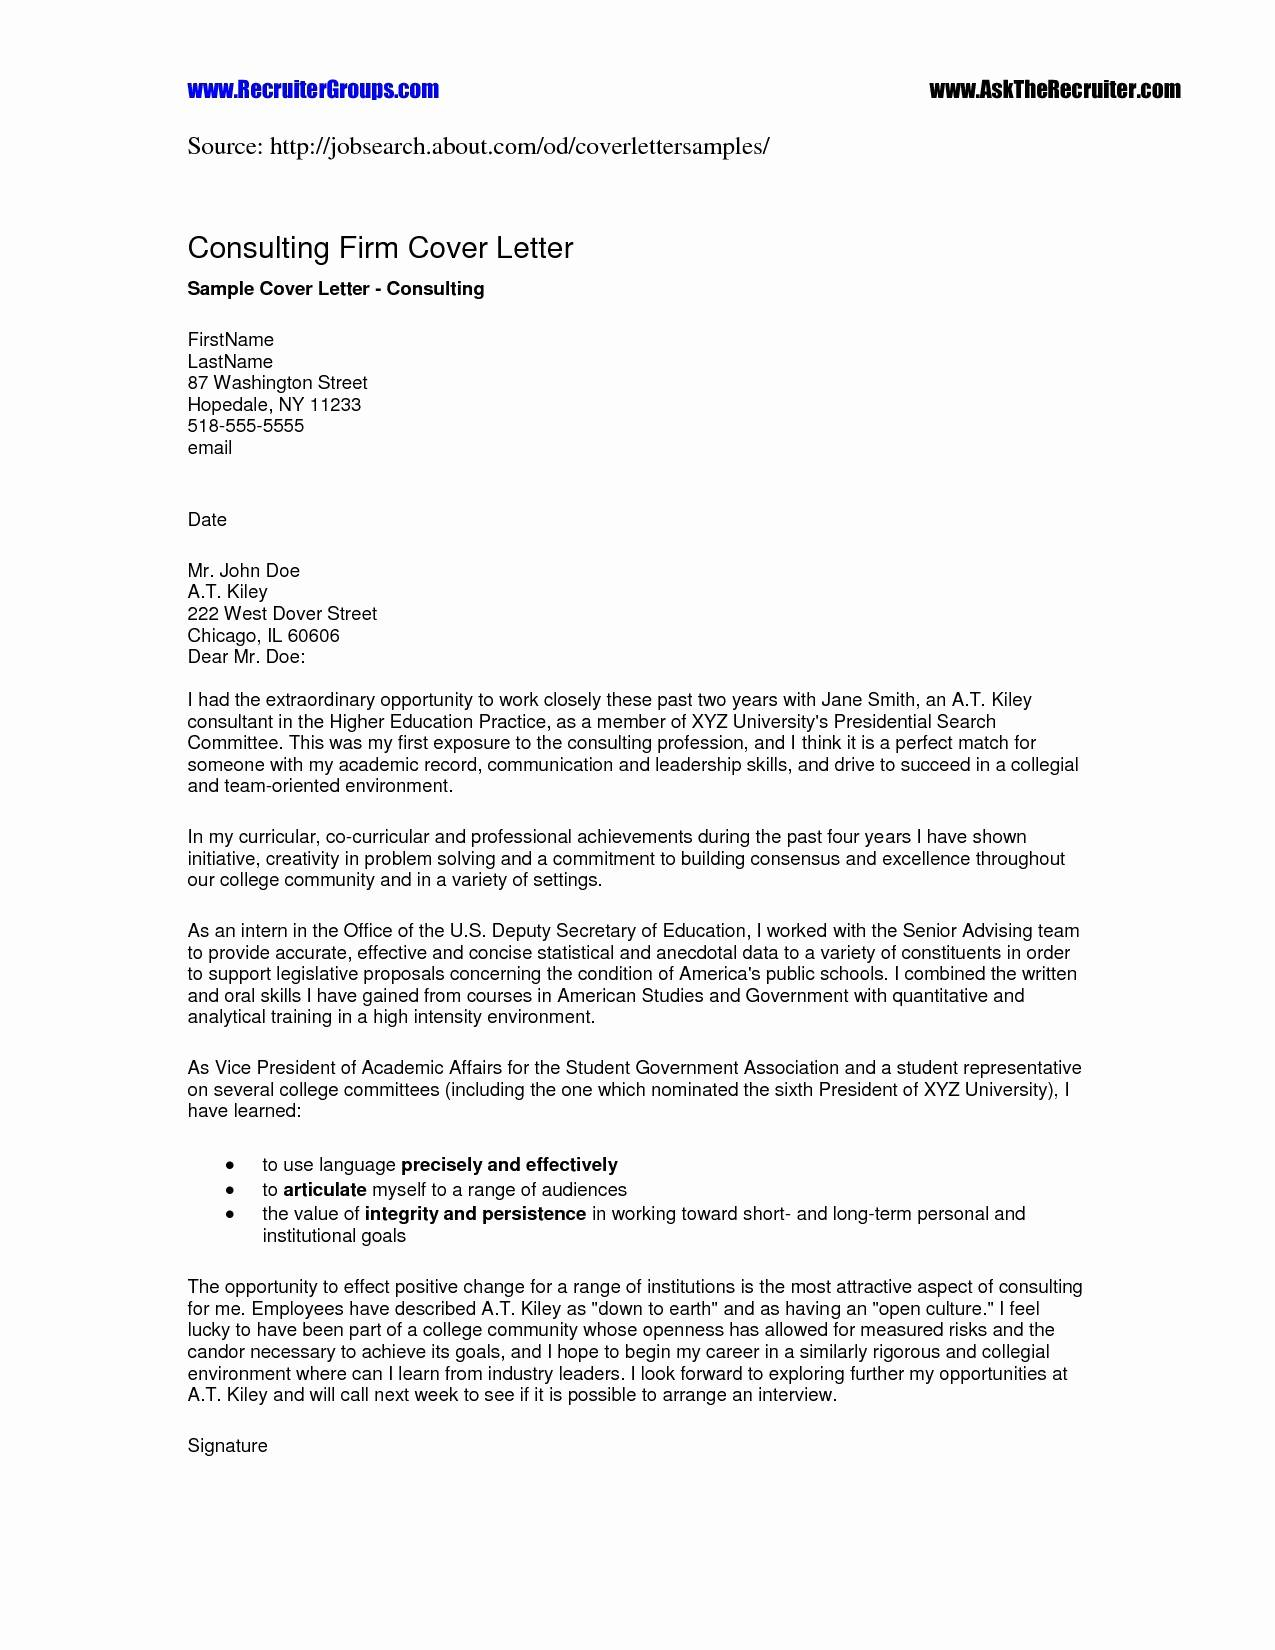 Job Reference Letter Template - Certificate Good Moral Character Template Unique 30 Inspirational